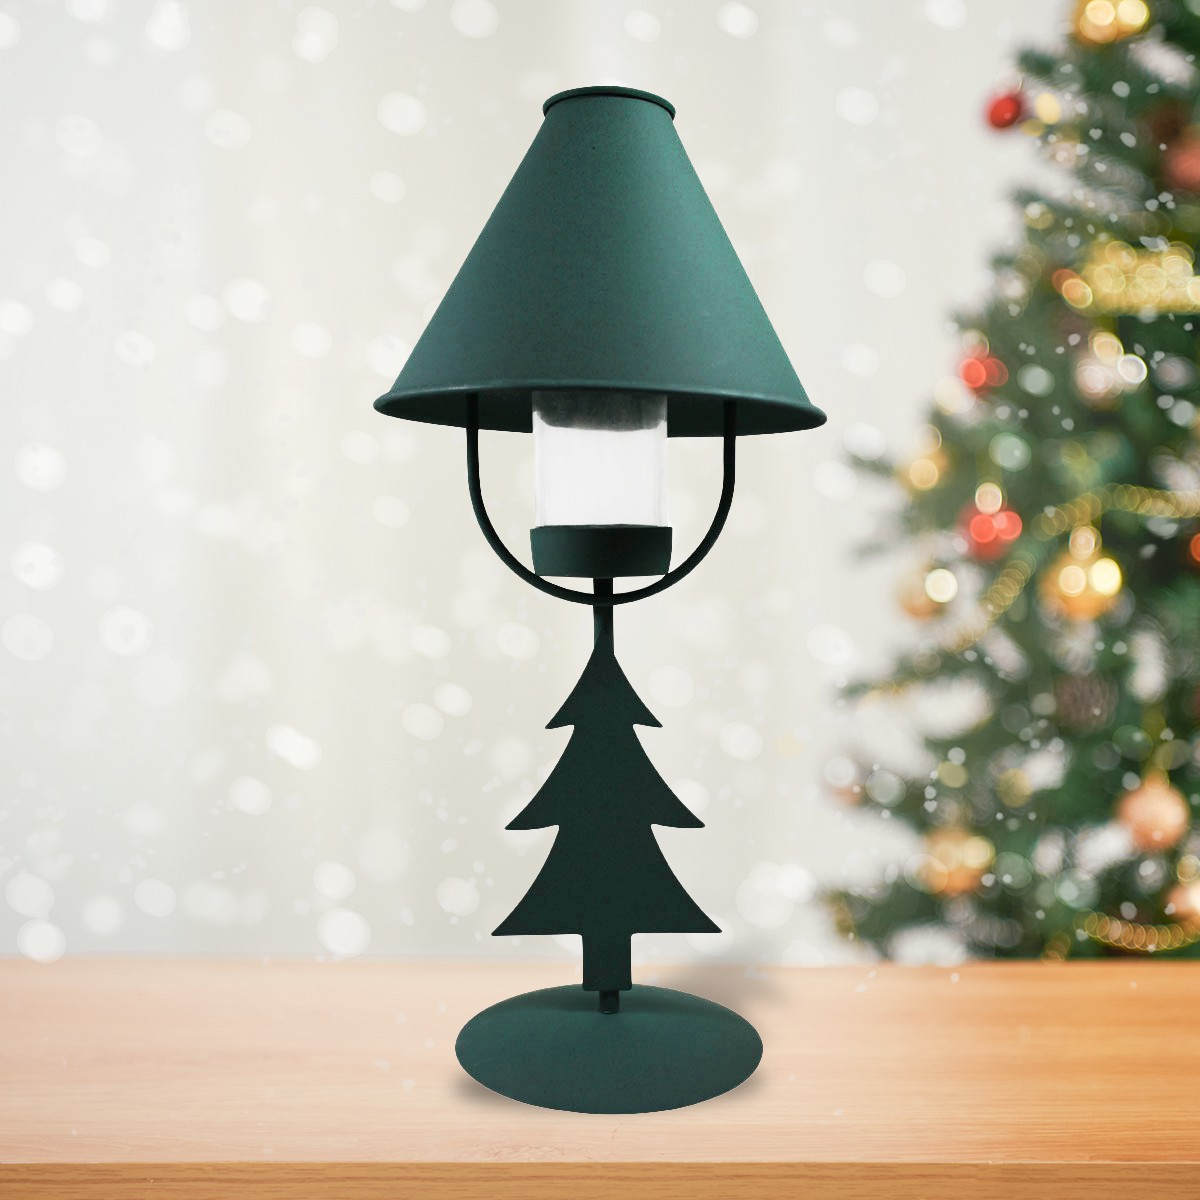 Metal Tabletop Christmas Tree: Christmas Tree Table Lamp Antique Green Metal